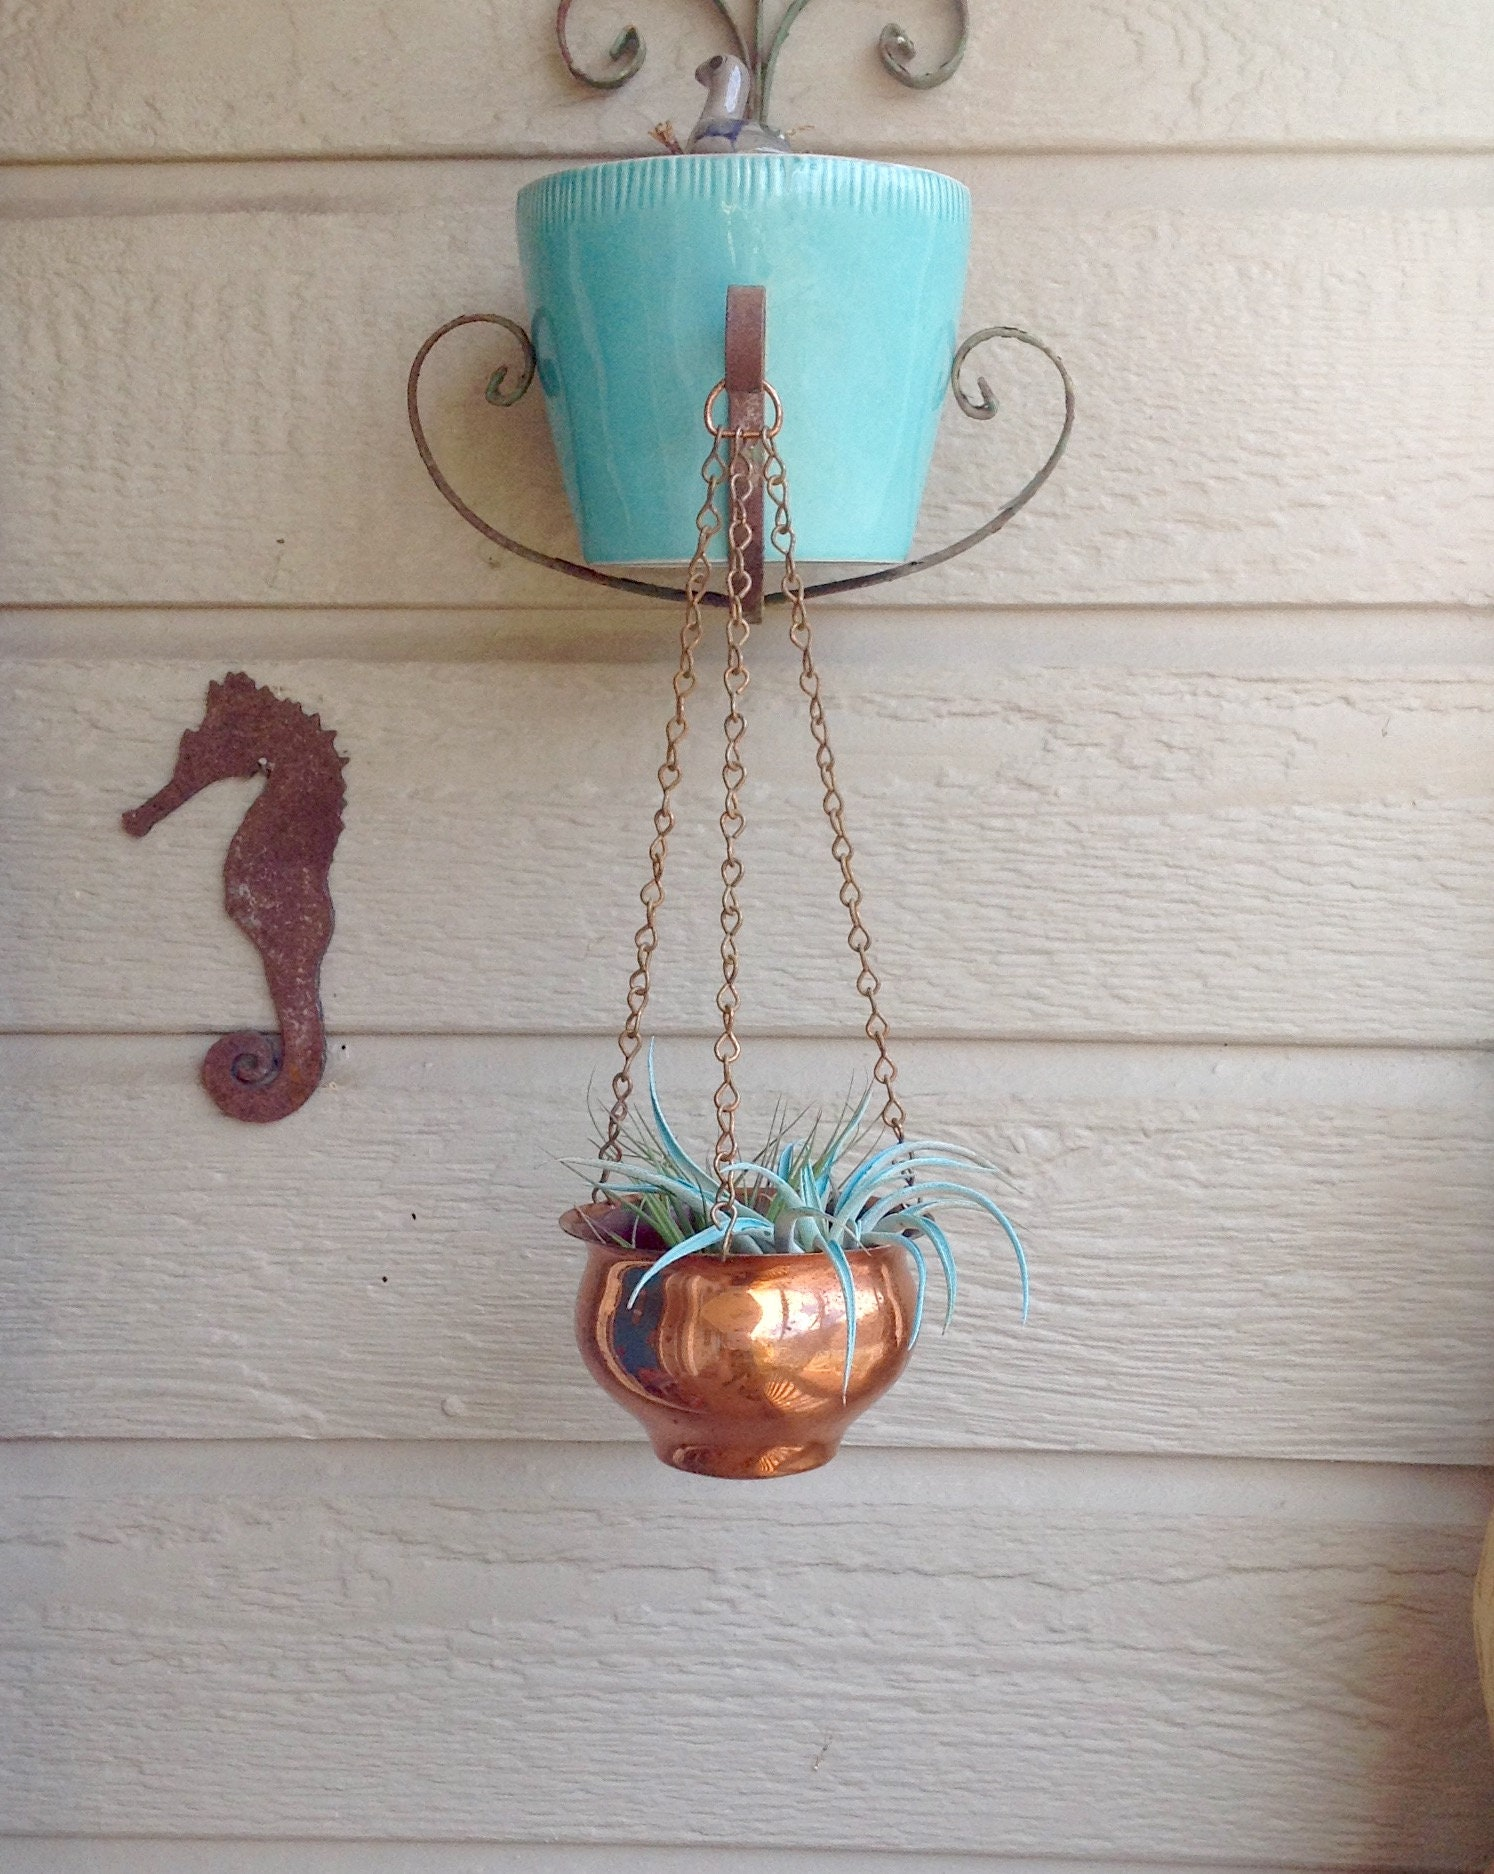 FREE SHIPPING Vintage Hanging Copper Pot w Chains Copper